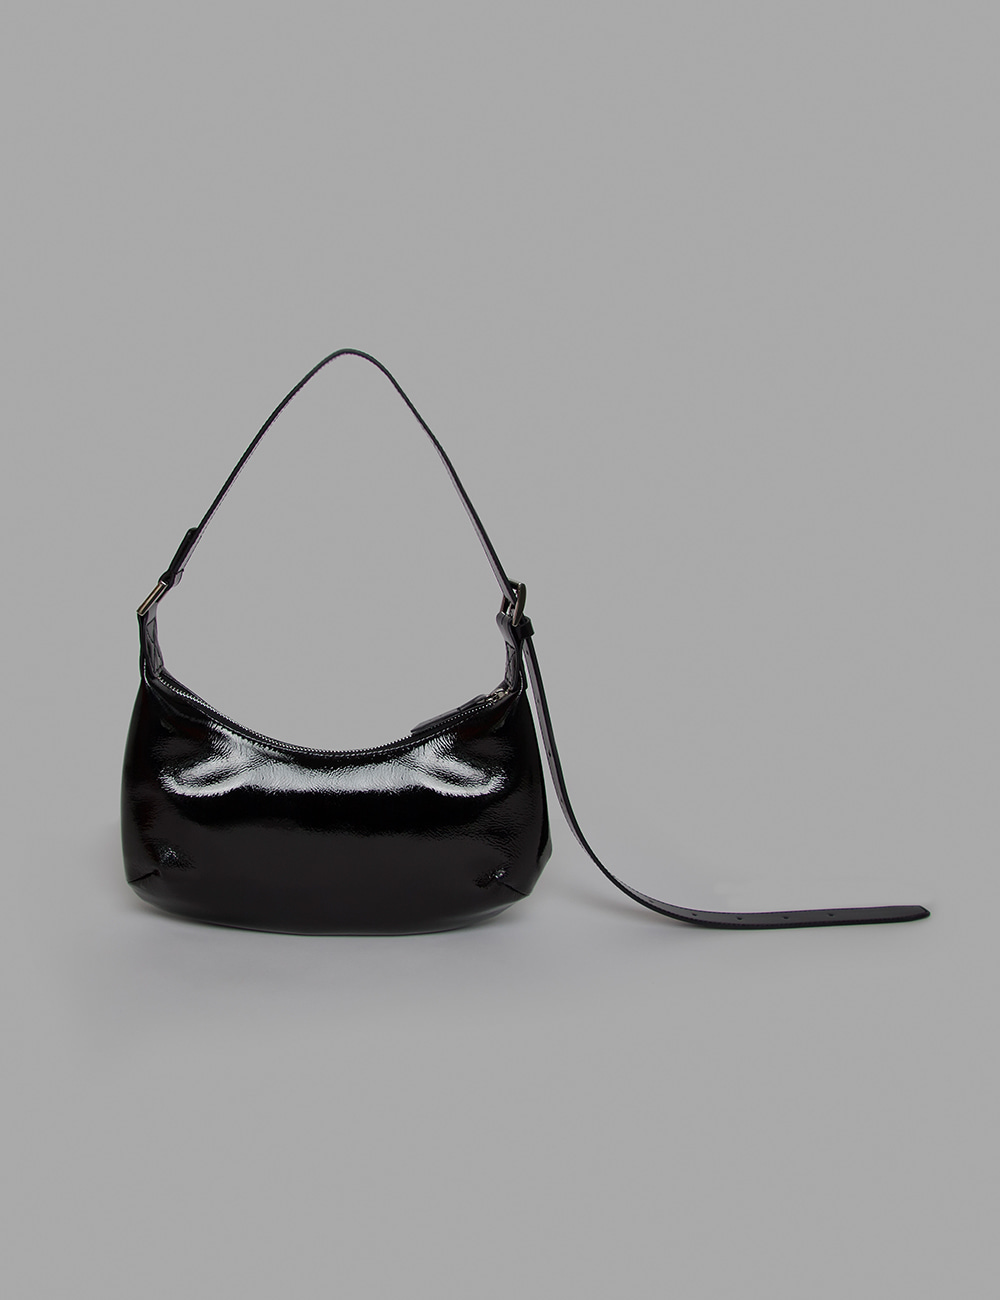 MAISON246,[21'ss 246 신상 가방]246 RIE BAG_BLACK,No.246